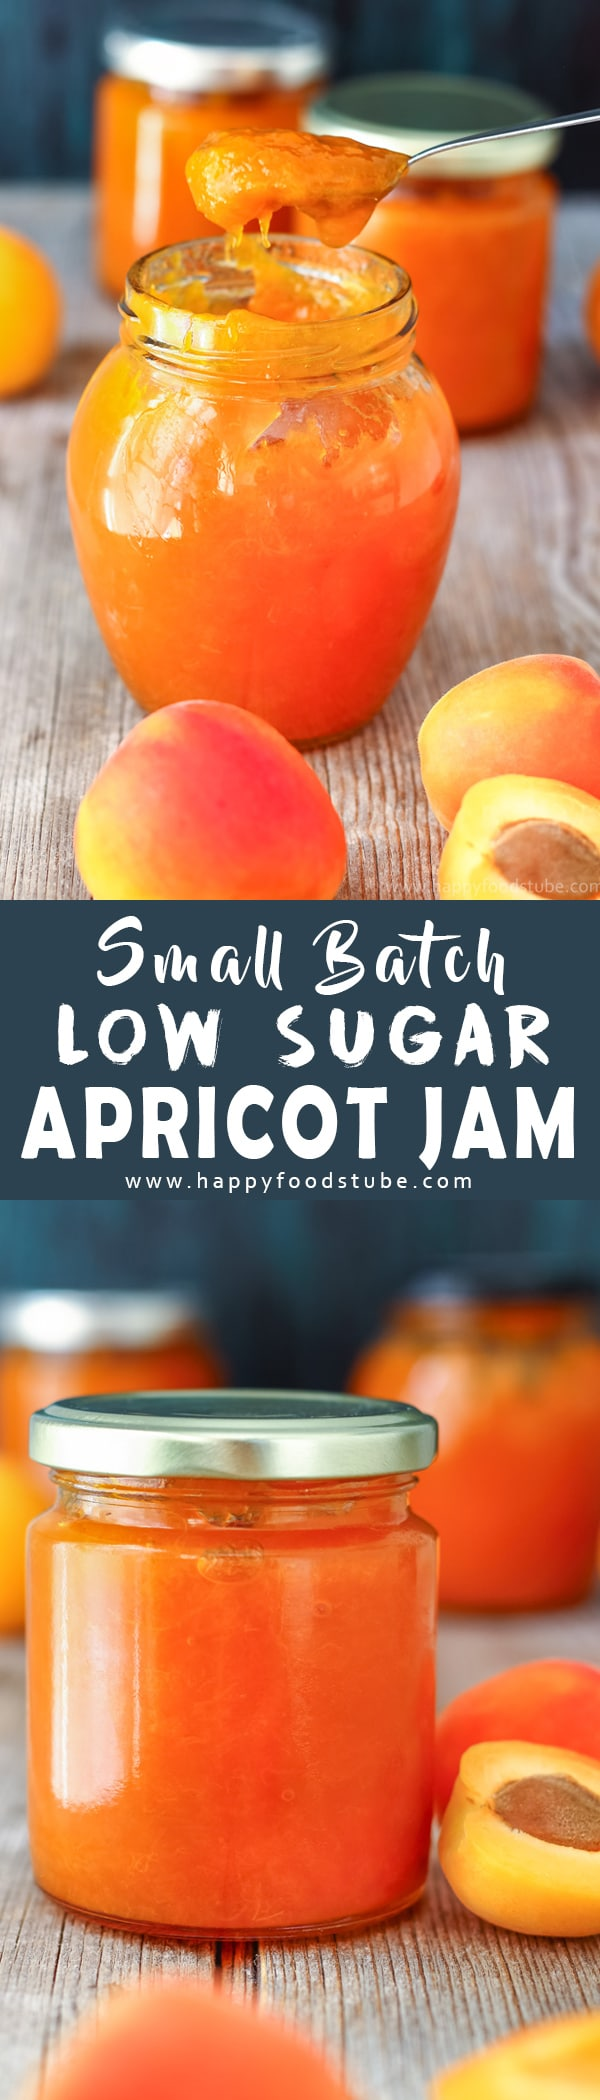 This small batch low sugar apricot jam is made from scratch and is pectin free. Use it as apricot glaze on cakes or simply spread on toast. Homemade apricot preserves recipe. How to make low sugar apricot jam